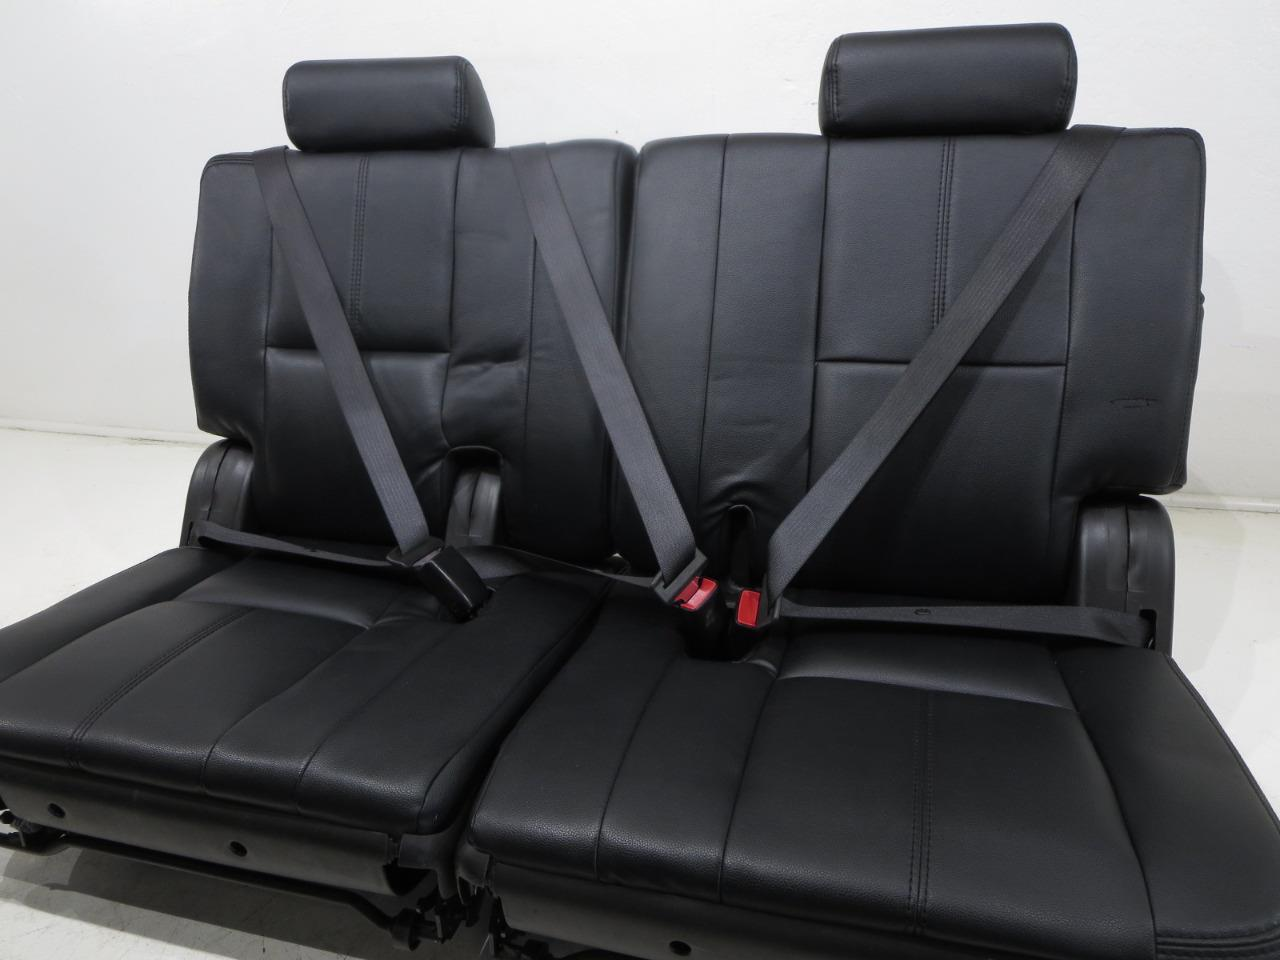 used 2013 chevrolet tahoe seats for sale page 4. Black Bedroom Furniture Sets. Home Design Ideas